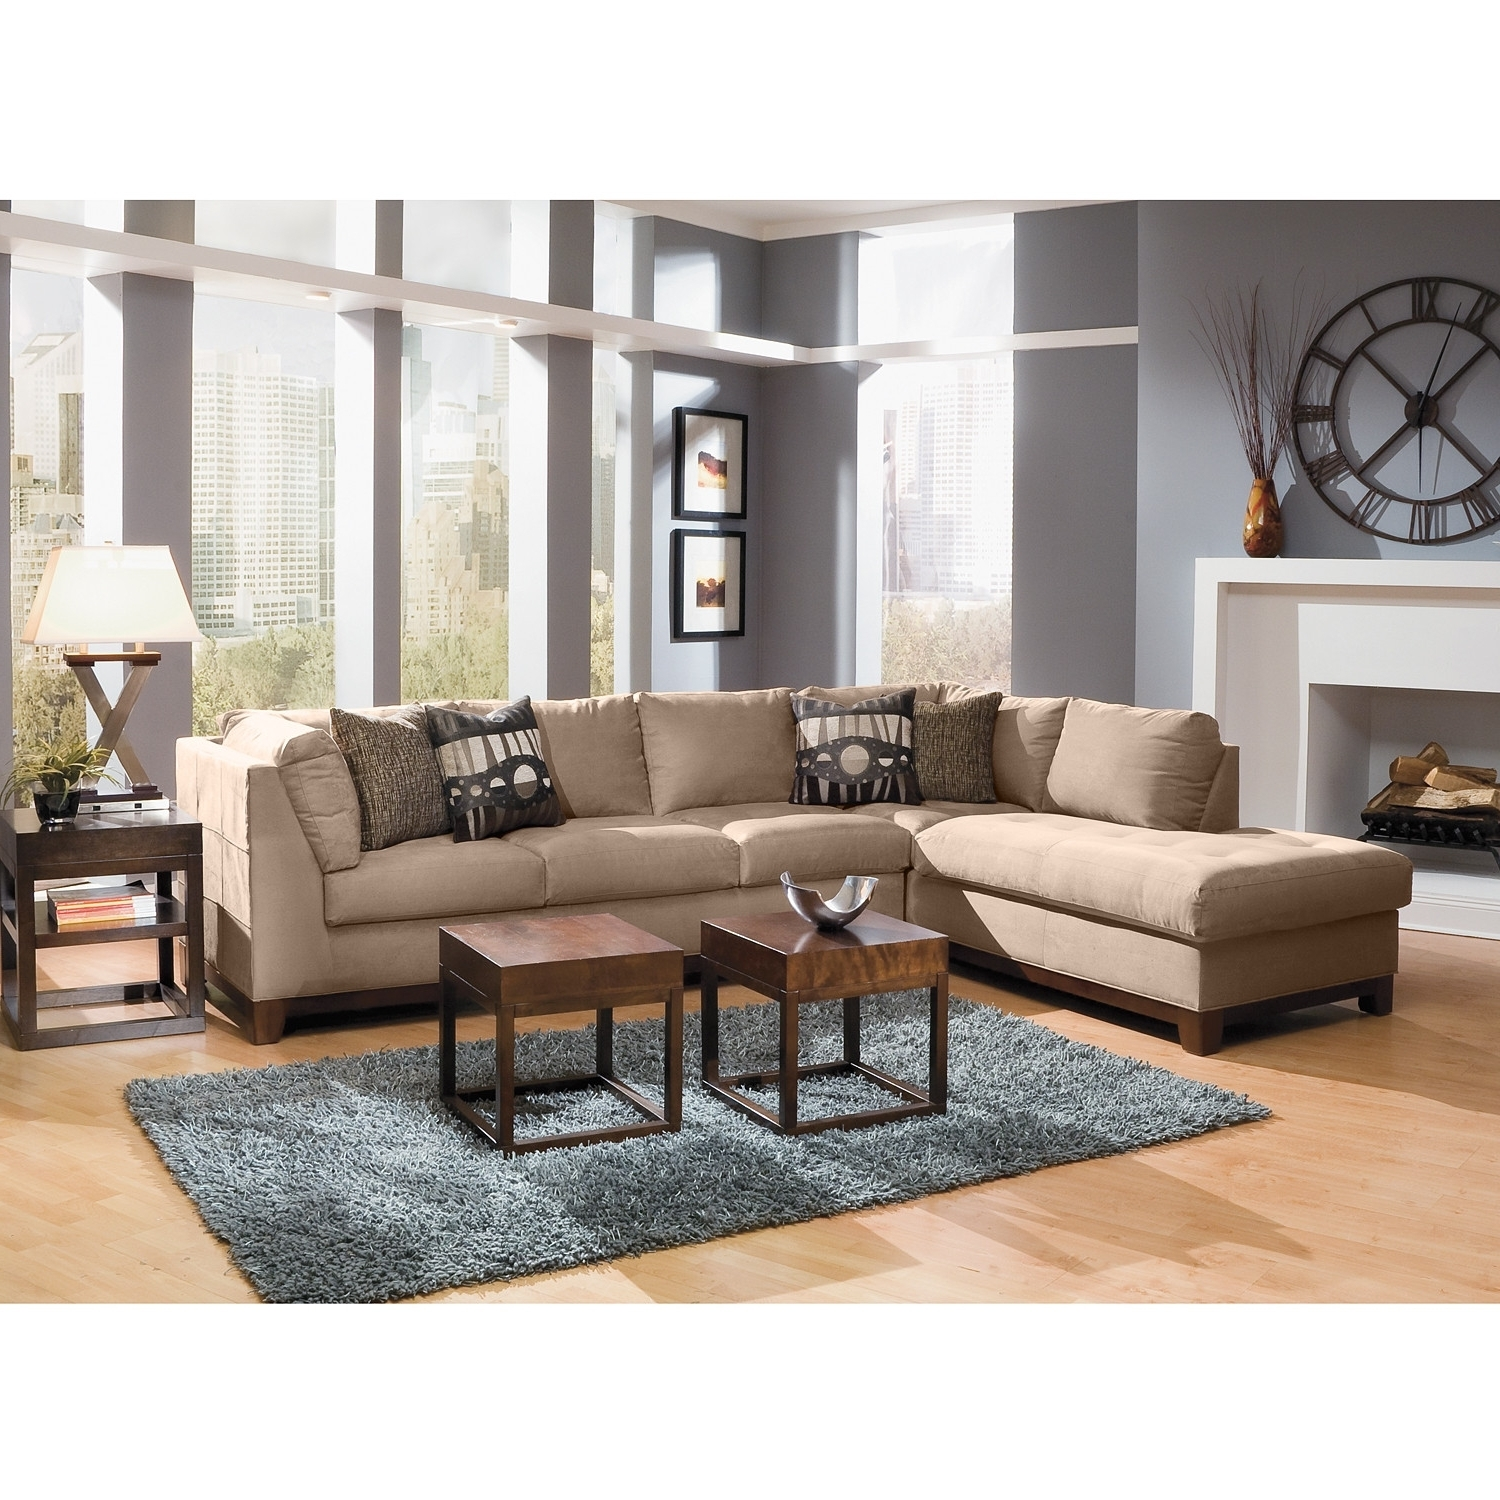 2018 American Furniture Warehouse Greensboro Nc Unique Fresh Sectional In Sectional Sofas In Greensboro Nc (View 1 of 20)